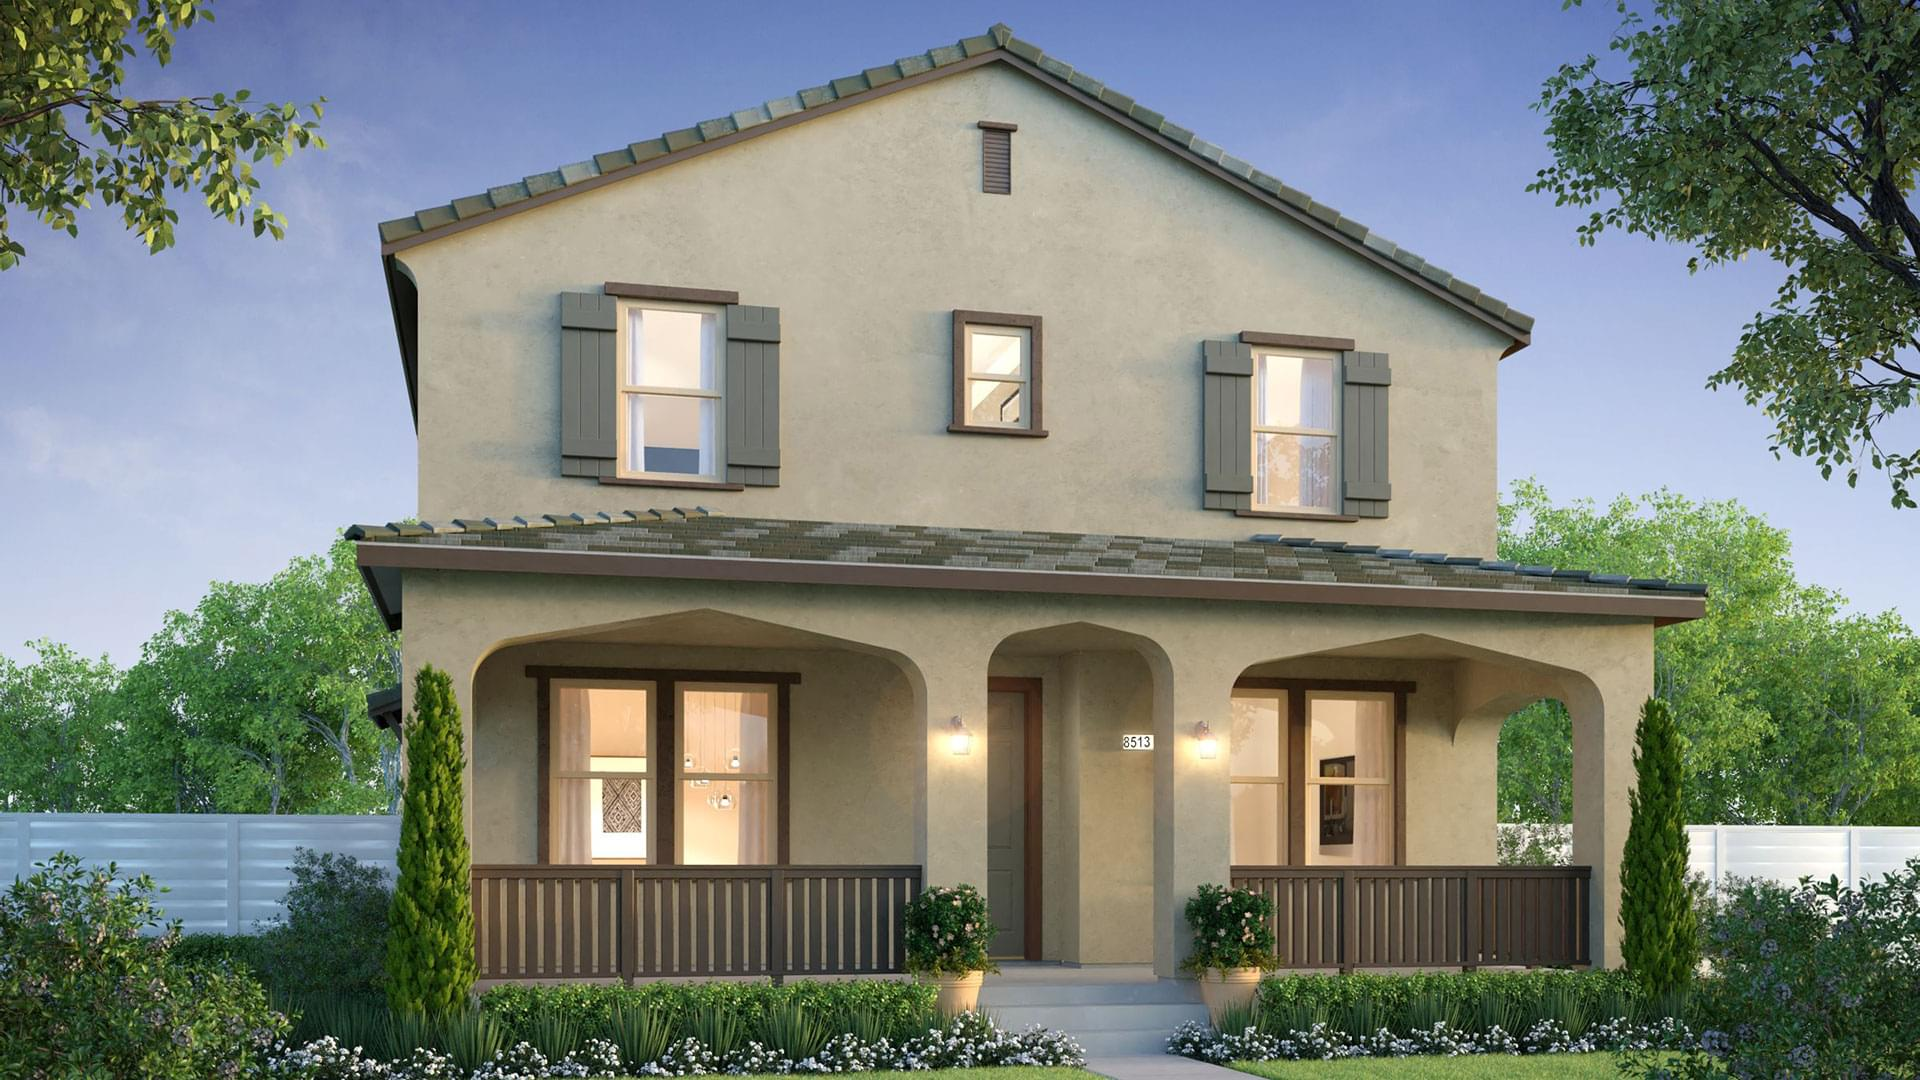 851 Fourth Street West in Sonoma, CA by DeNova Homes